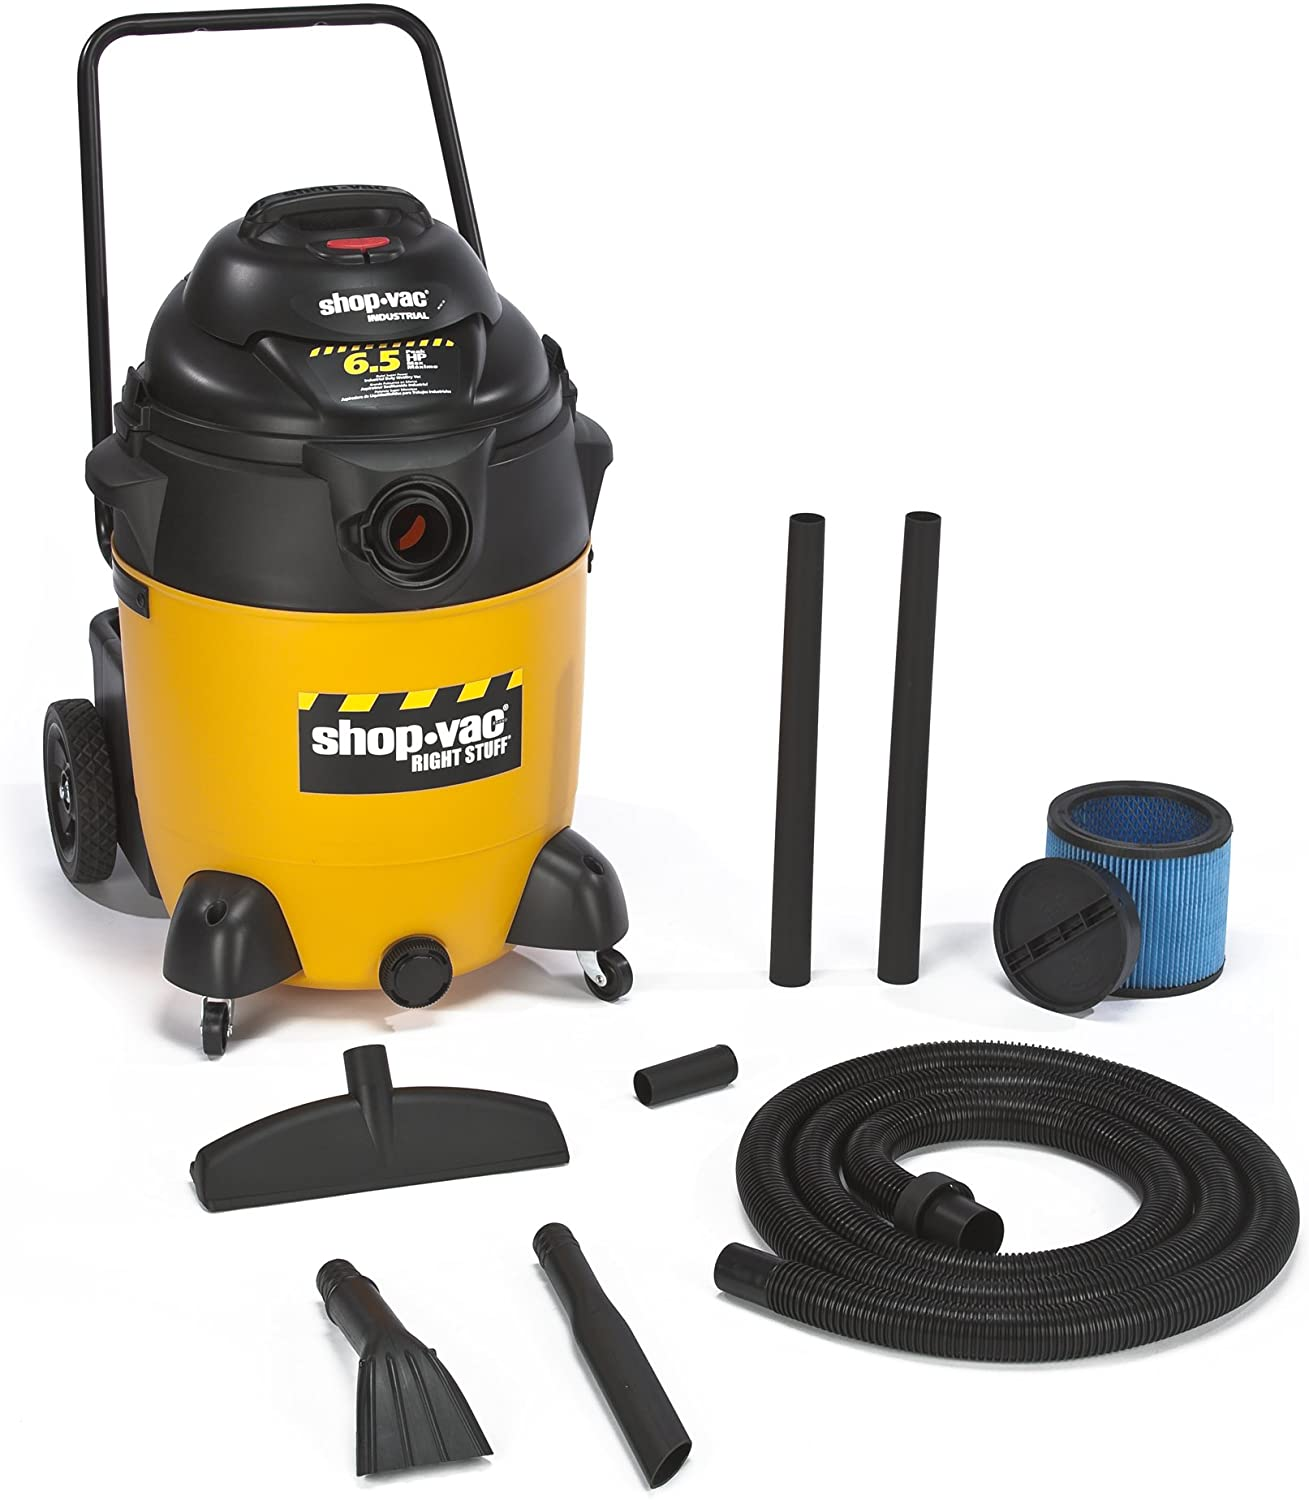 Shop-Vac 9626010 6.5-Peak Horsepower Right Stuff Wet/Dry Vacuum, 24-Gallon